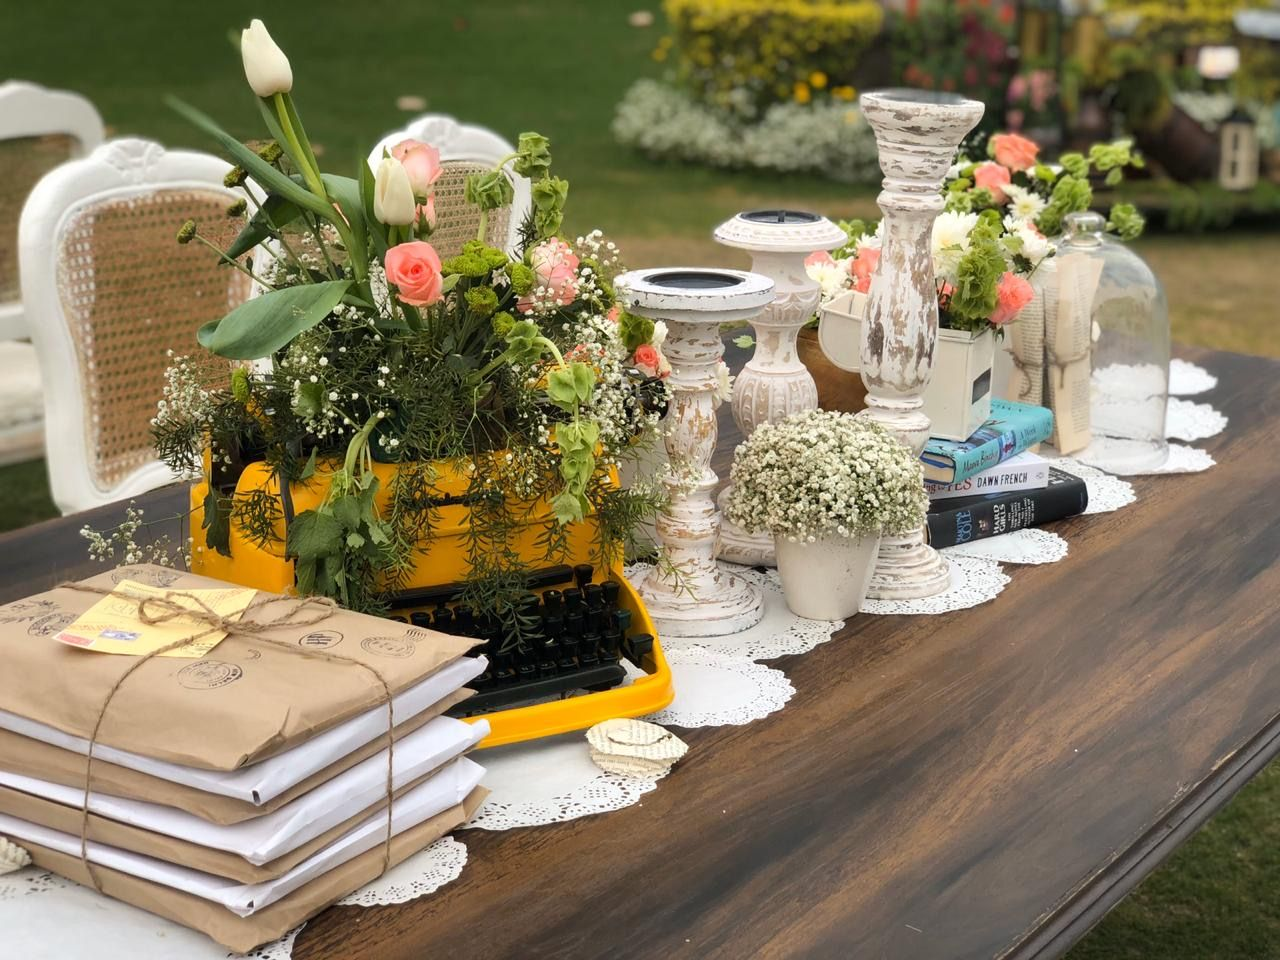 Breathtaking Vintage Theme Add-ons that We Spotted For Your Wedding, 10954cdd 232b 4d8e 8564 975551d65edd.jpg